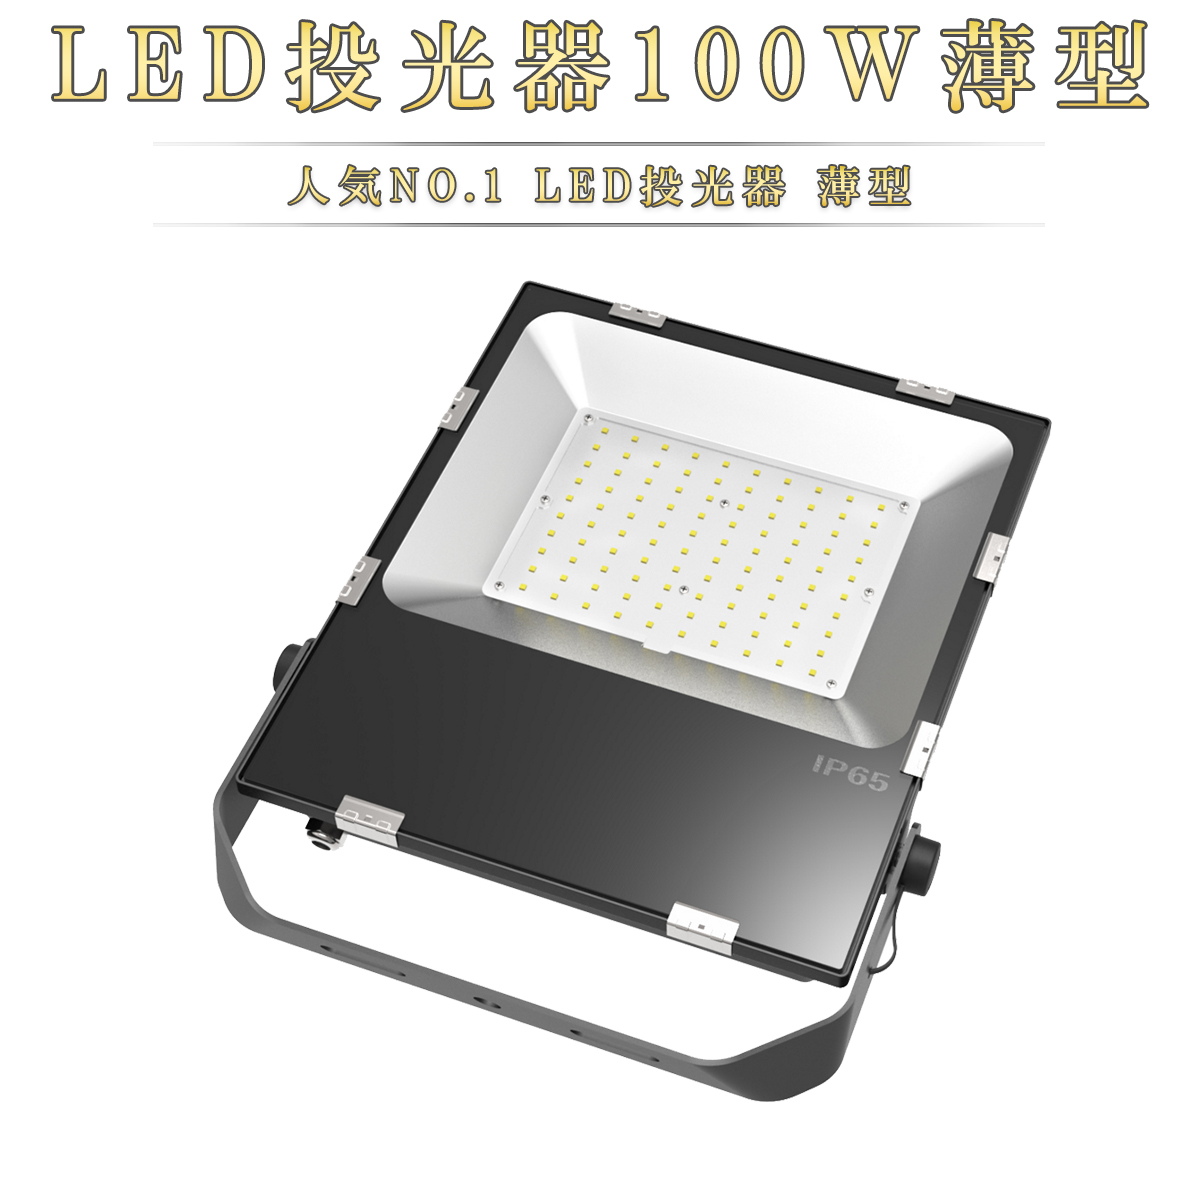 Led Floodlights Four Set 5 M Code With 100 W Emitter 6000 K White Light